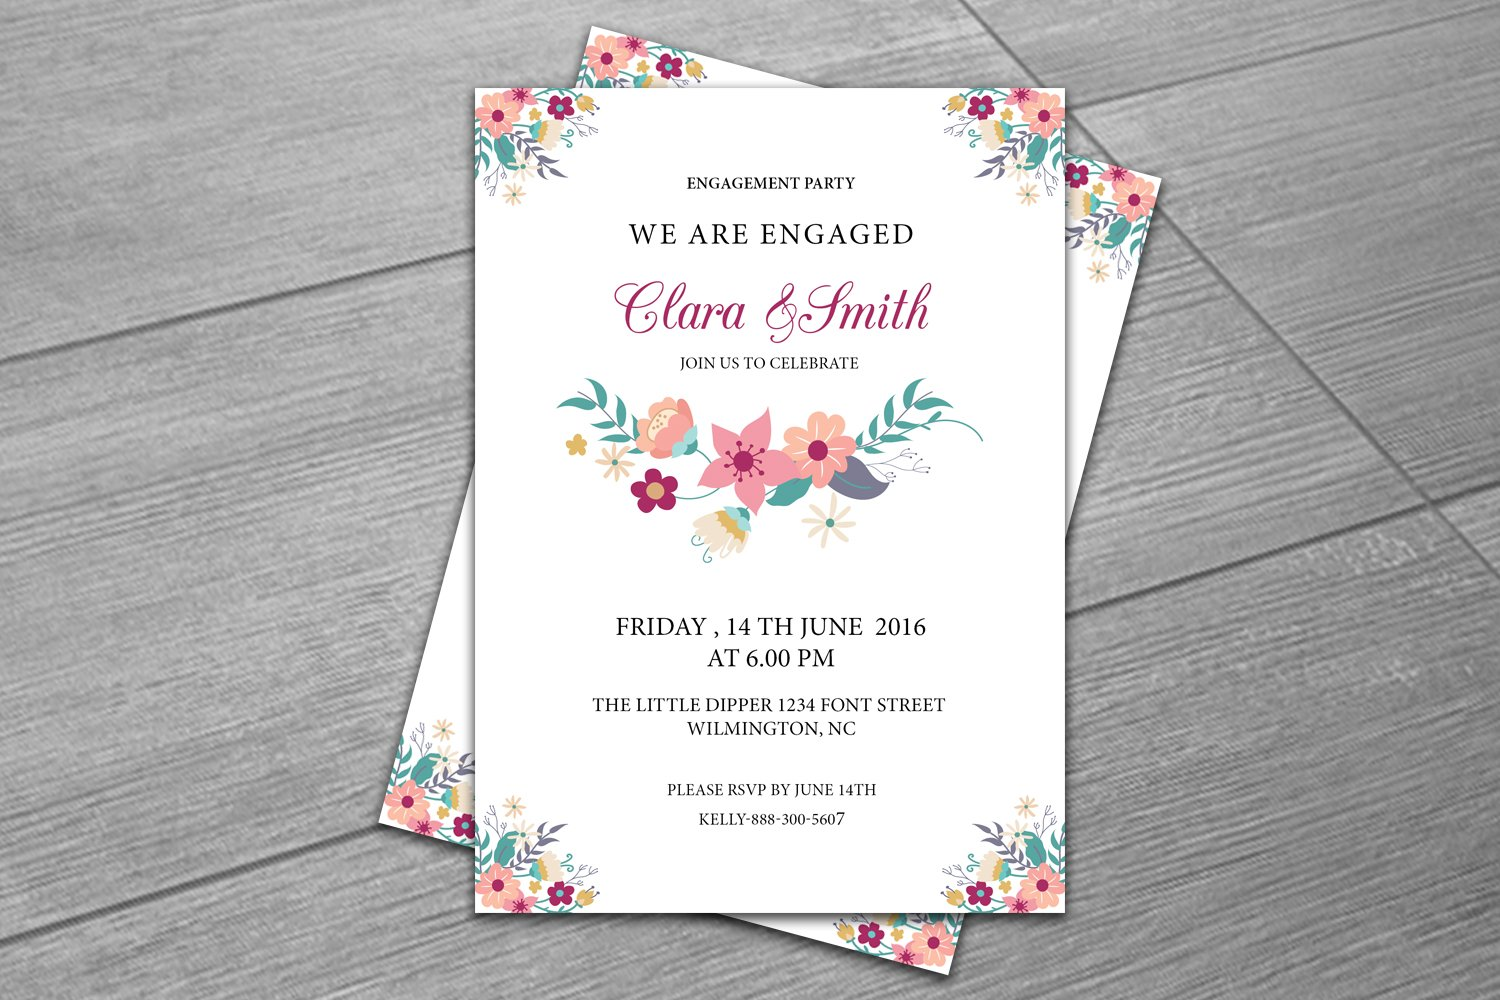 Engagement Party Invitation Template Invitation Templates on – Engagement Party Template